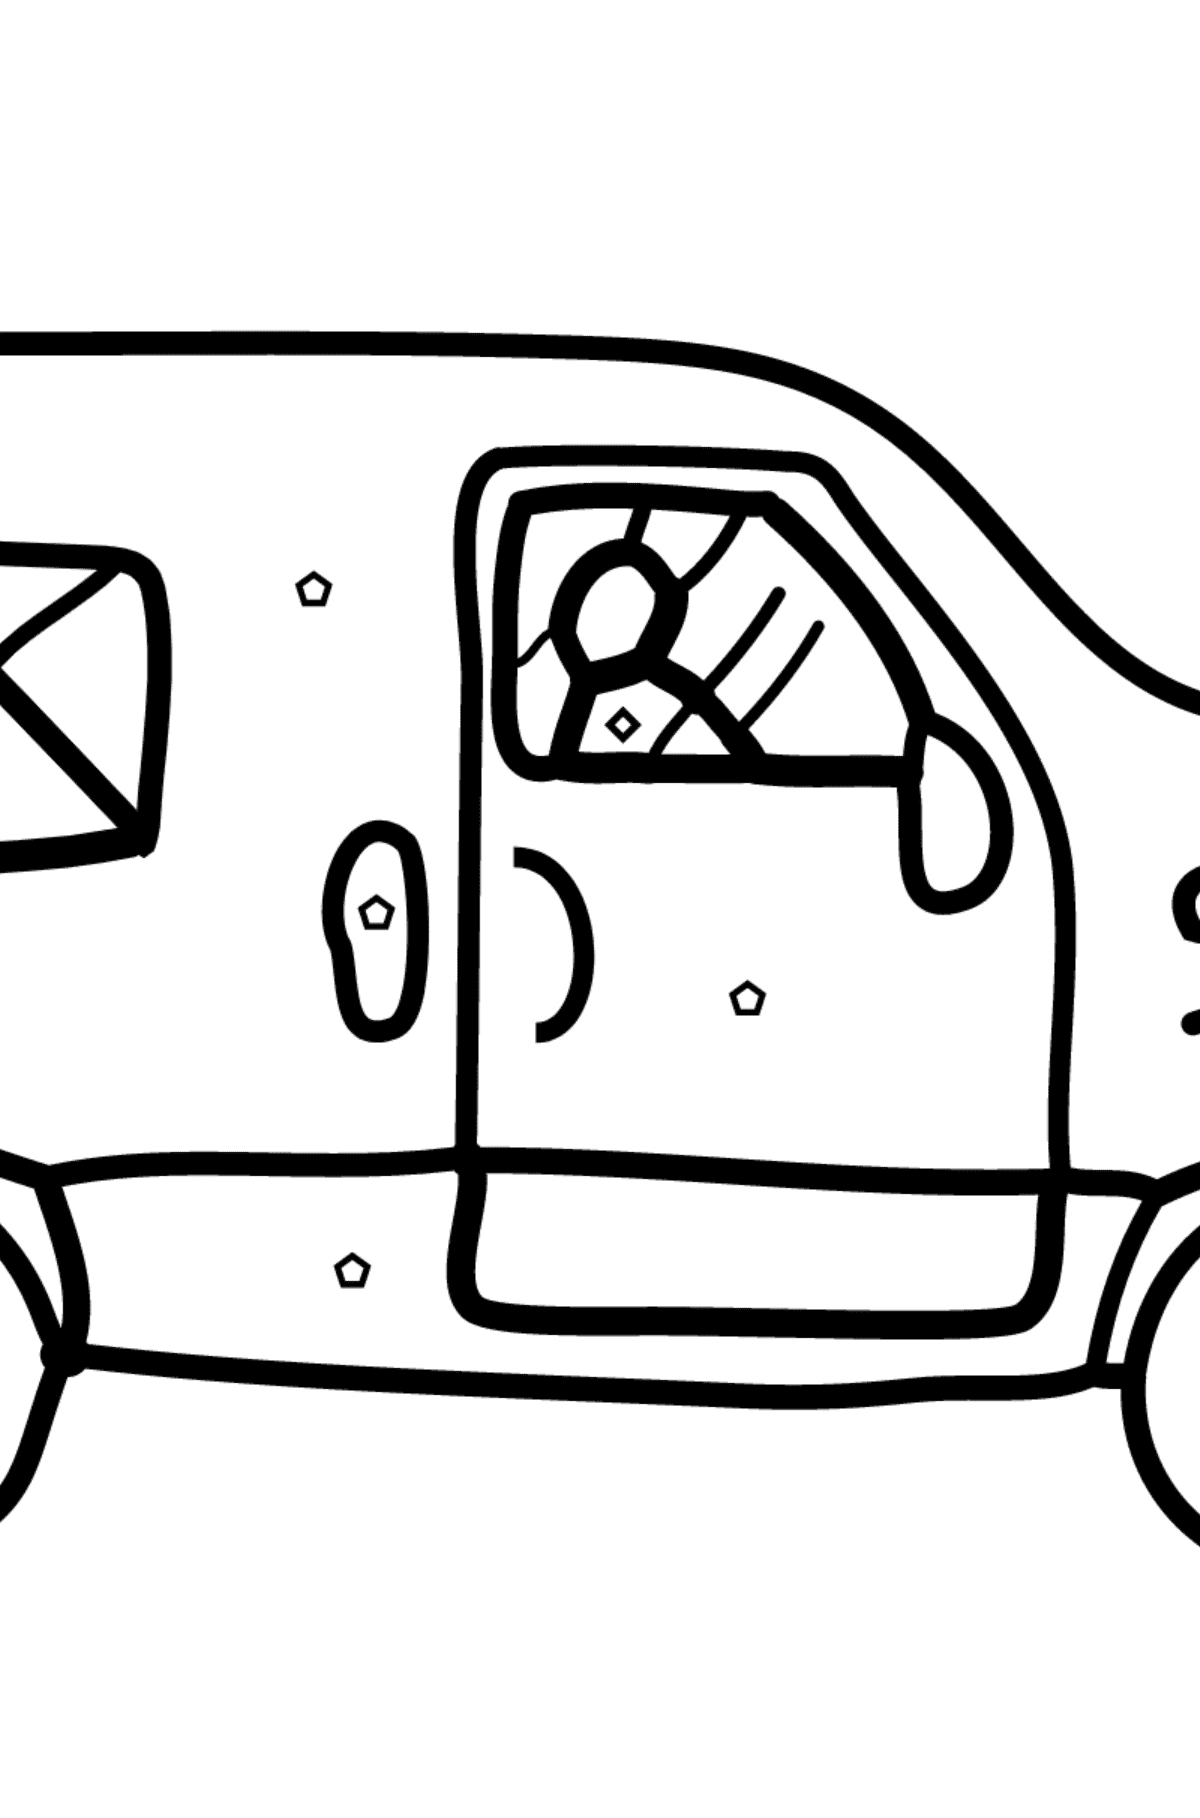 Coloring Page - A Car is Carrying Mail - Coloring by Symbols and Geometric Shapes for Children